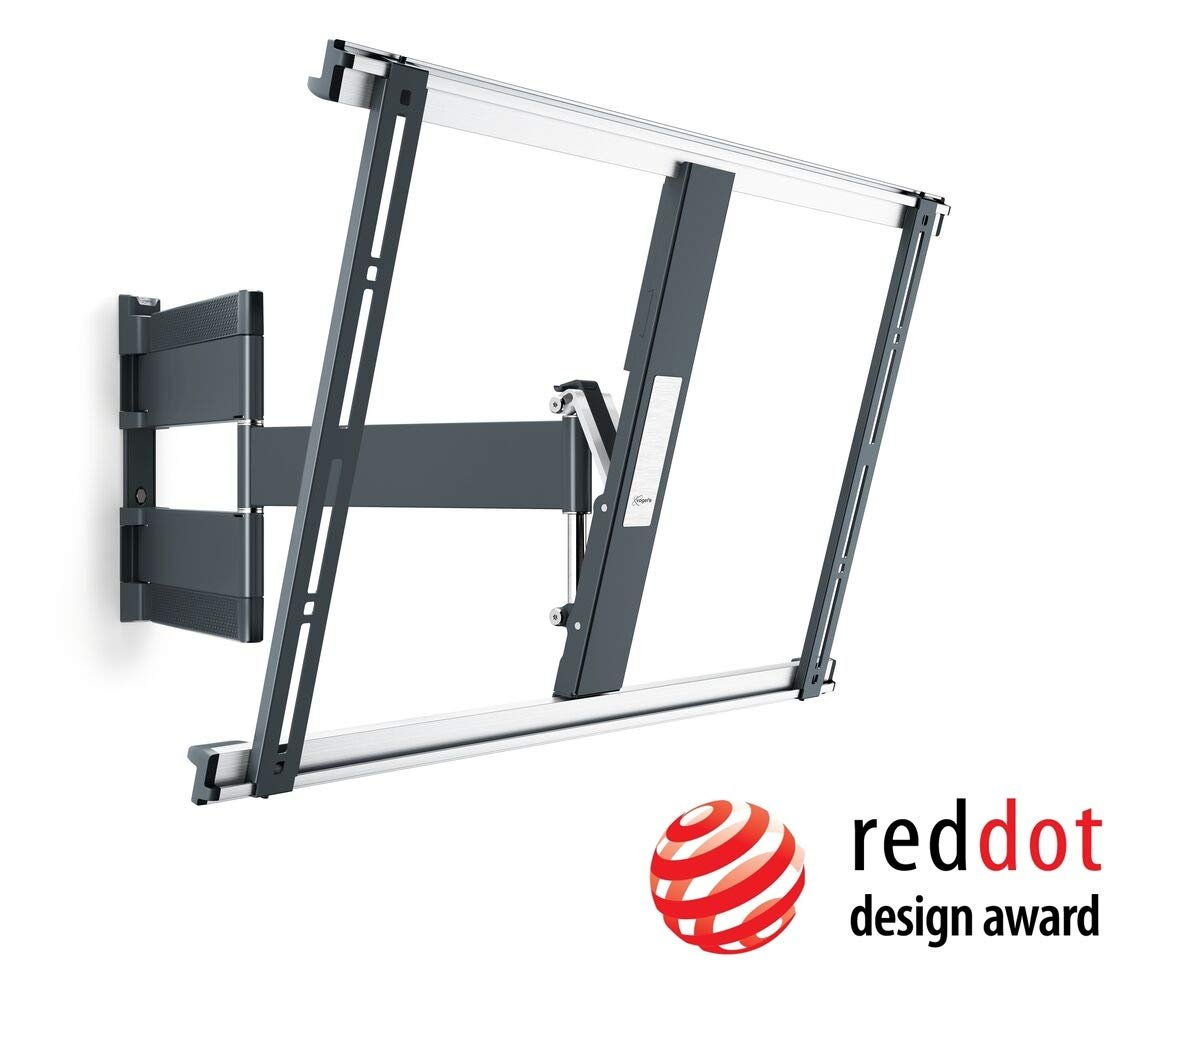 The best TV mounting bracket in terms of quality and design is the Vogel 180 Degree Swivel mount